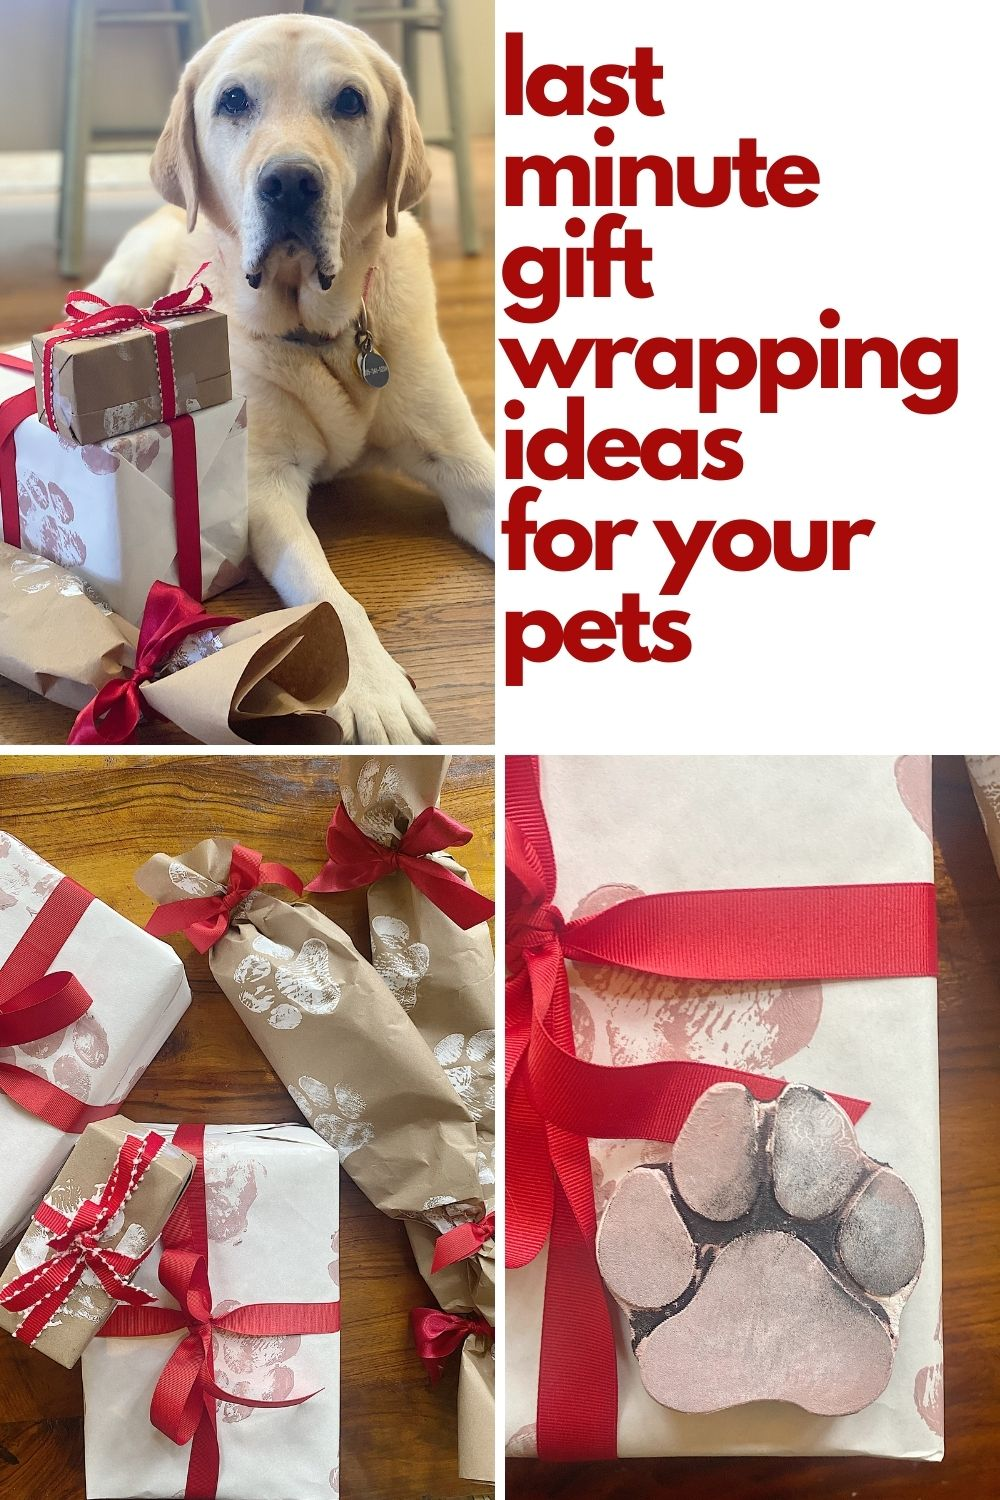 Today my dog Sport and I are very excited to share some creative pet gift wrapping ideas. We made wrapping paper and came up with some very fun ideas for pets to give their families.